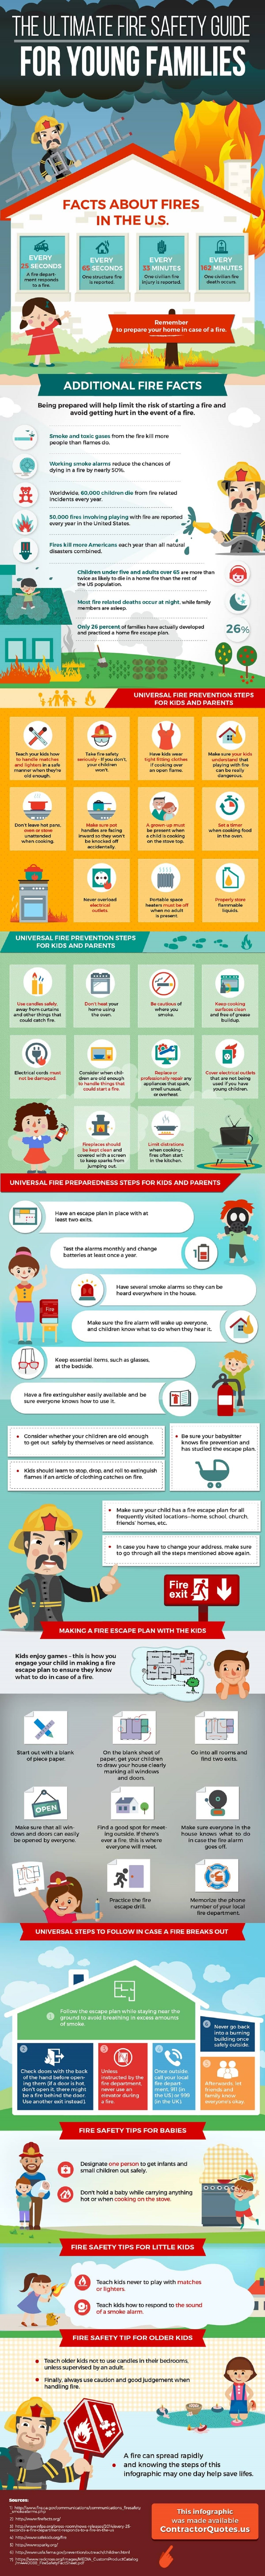 -86-hours-of-research-led-to-this-infographic-on-fire-safety-for-kids-infographic